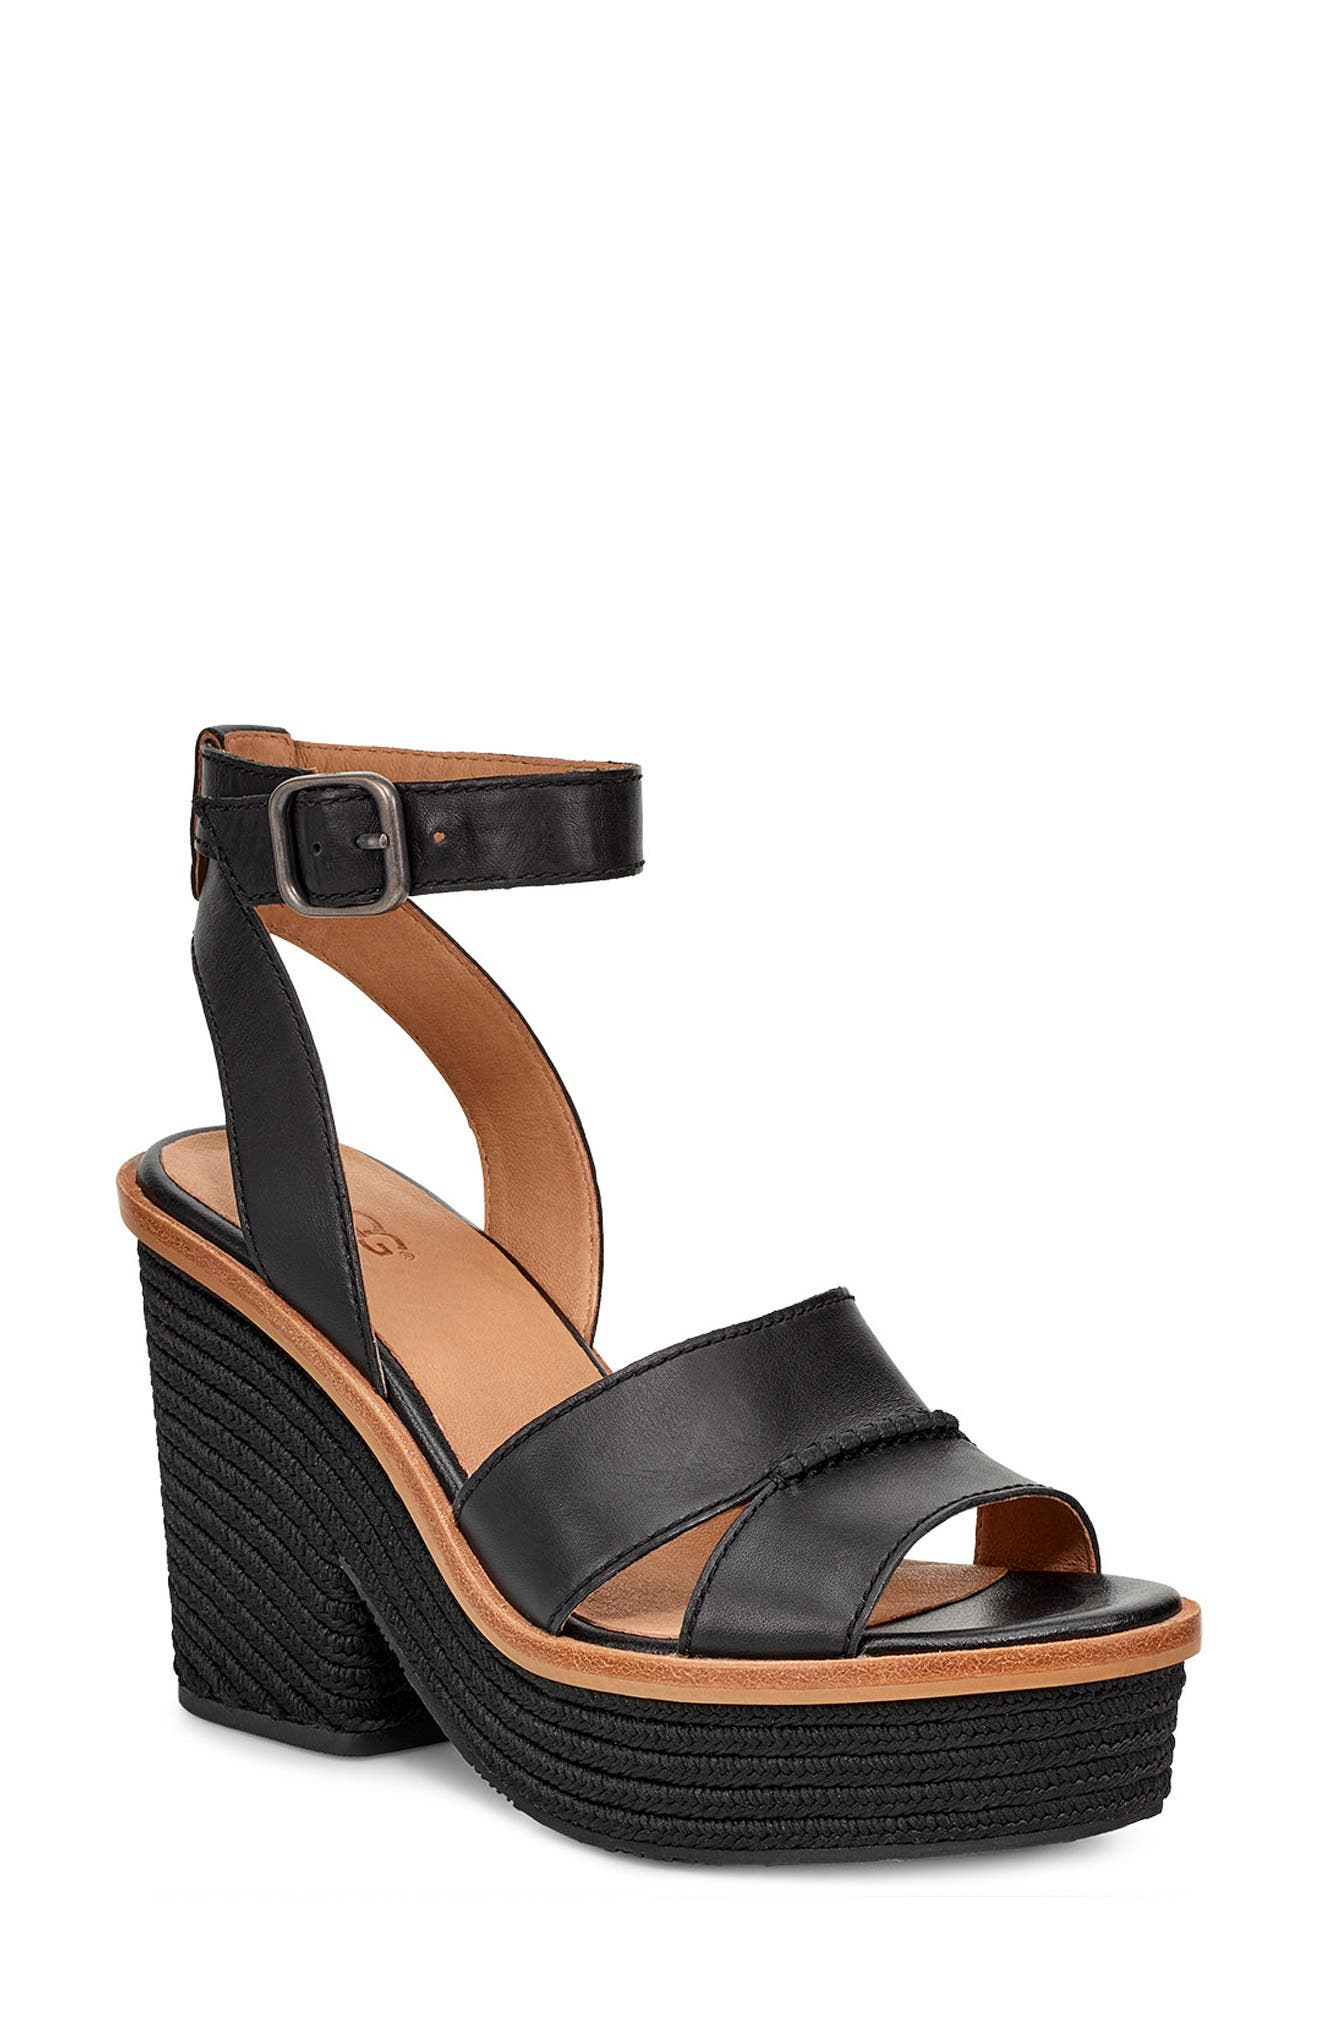 Carine Platform Sandal, Main, color, BLACK LEATHER